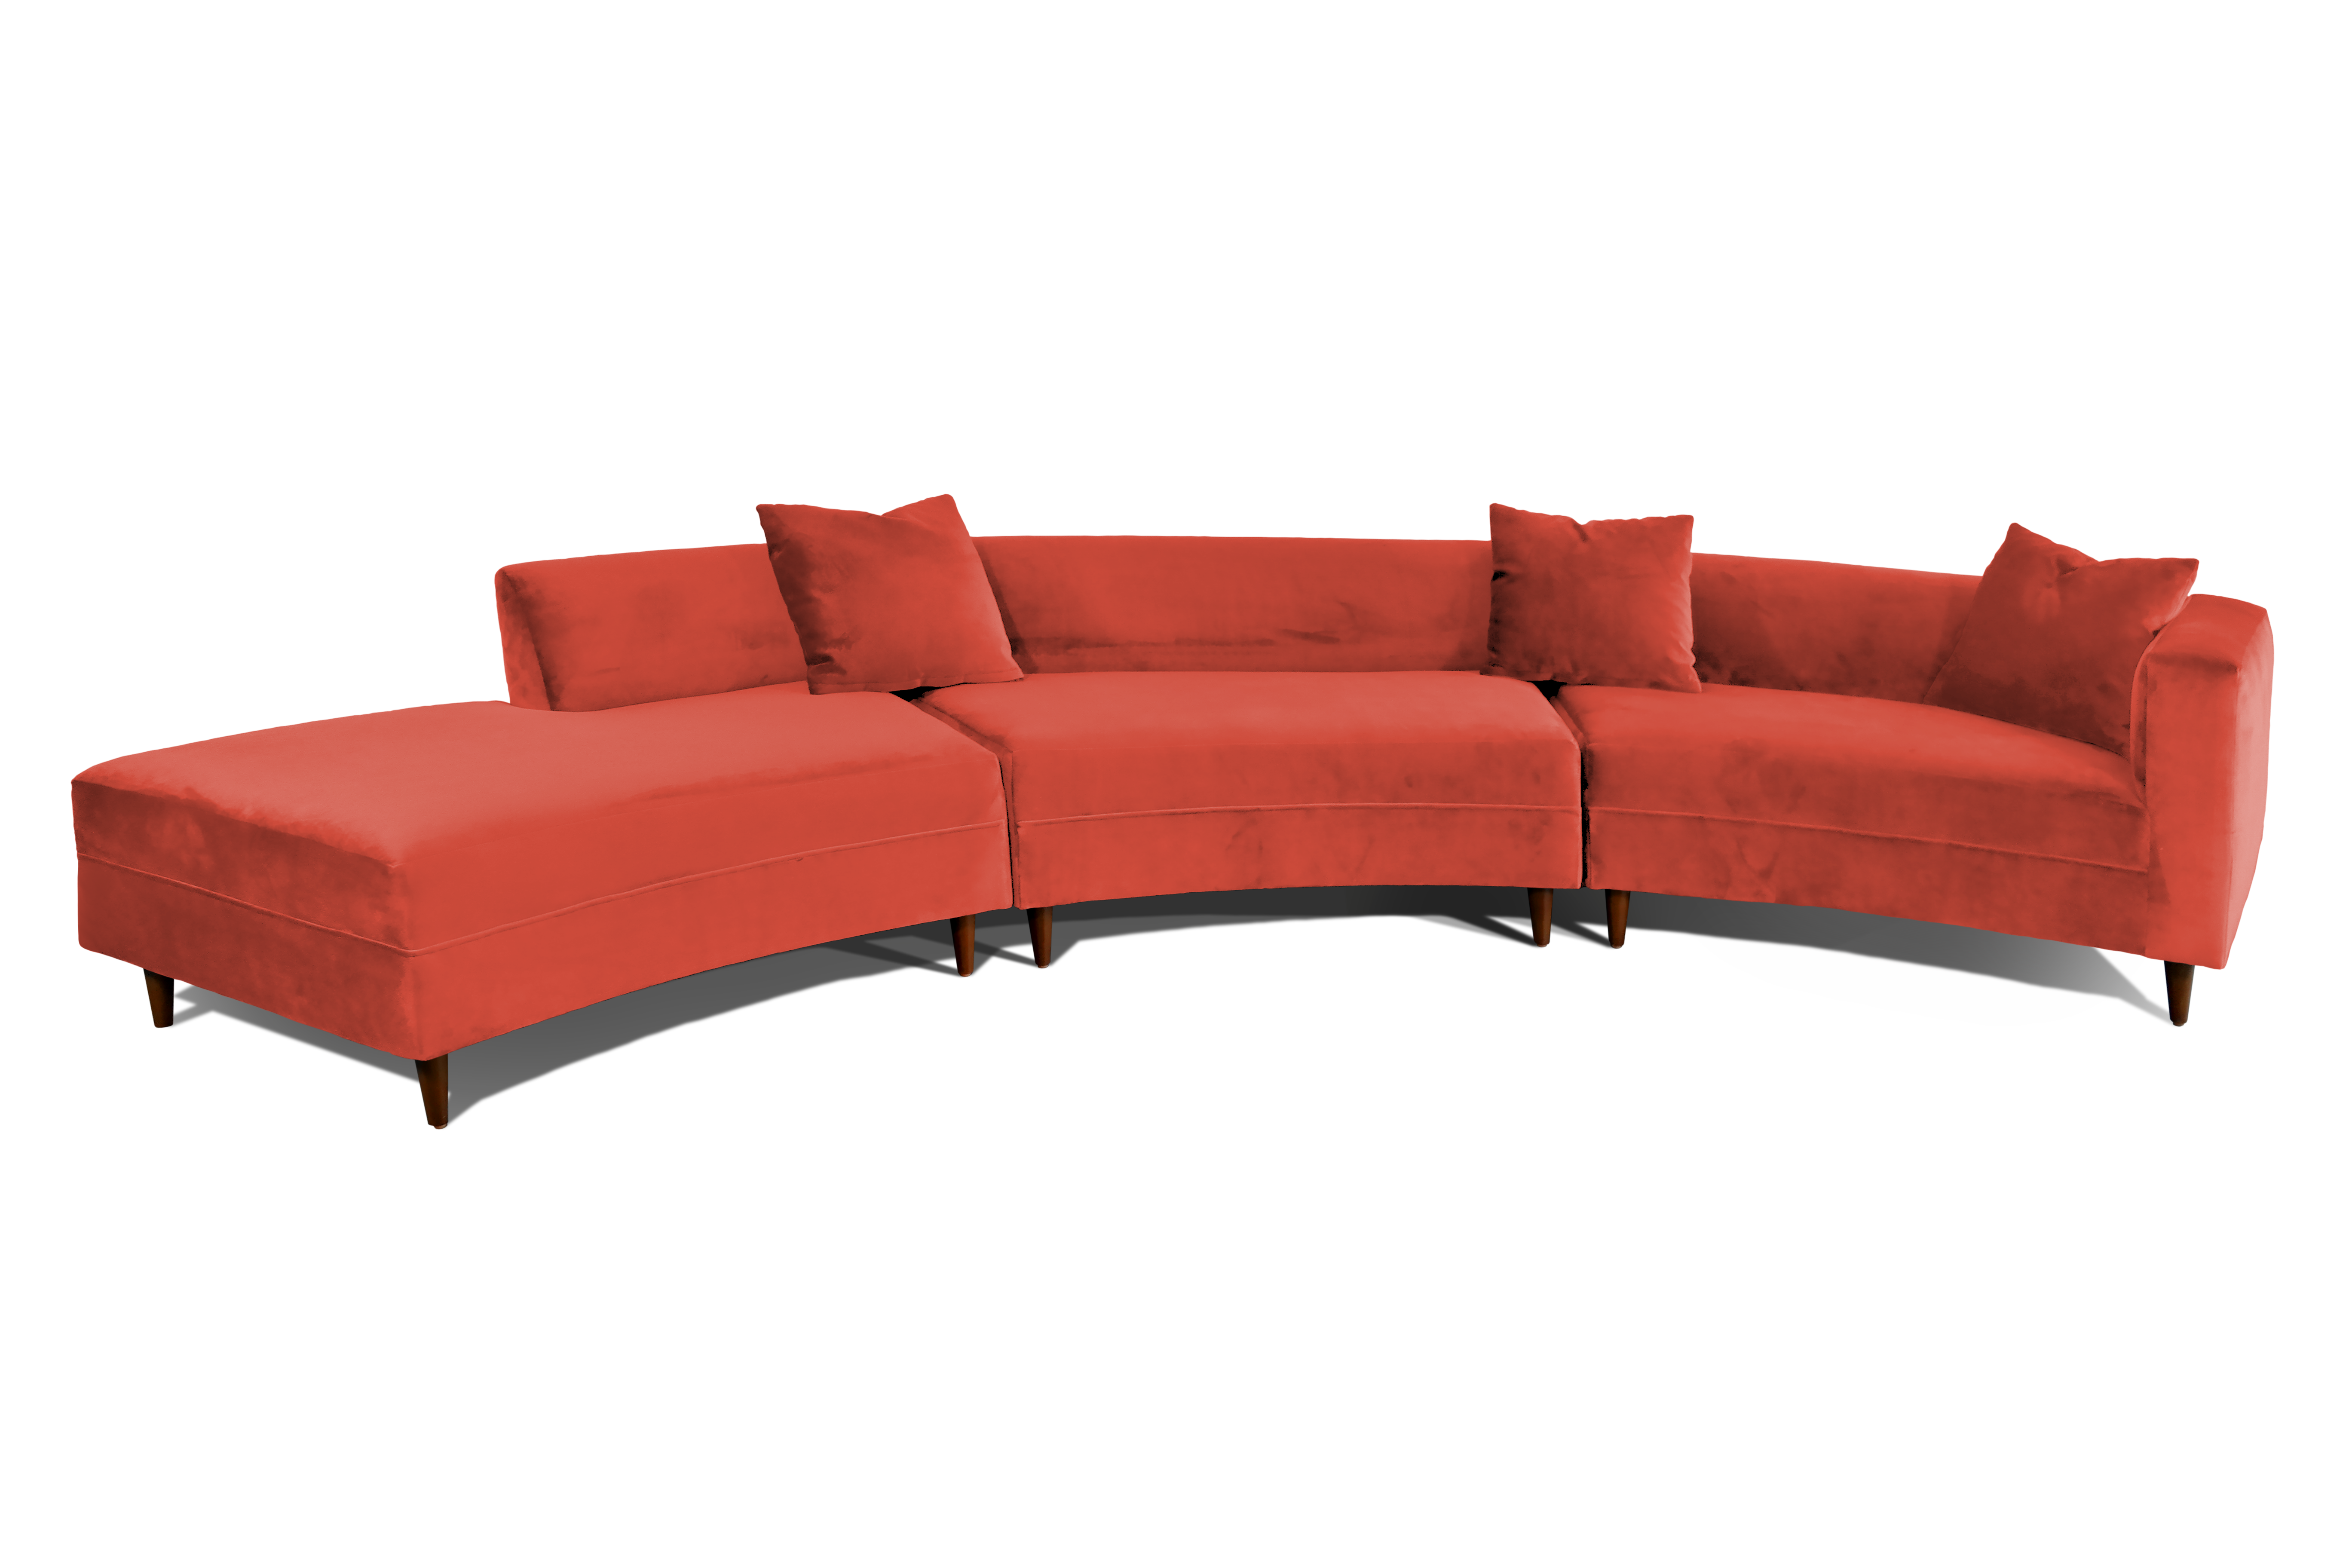 Modern couch png. Decenni curva mid century